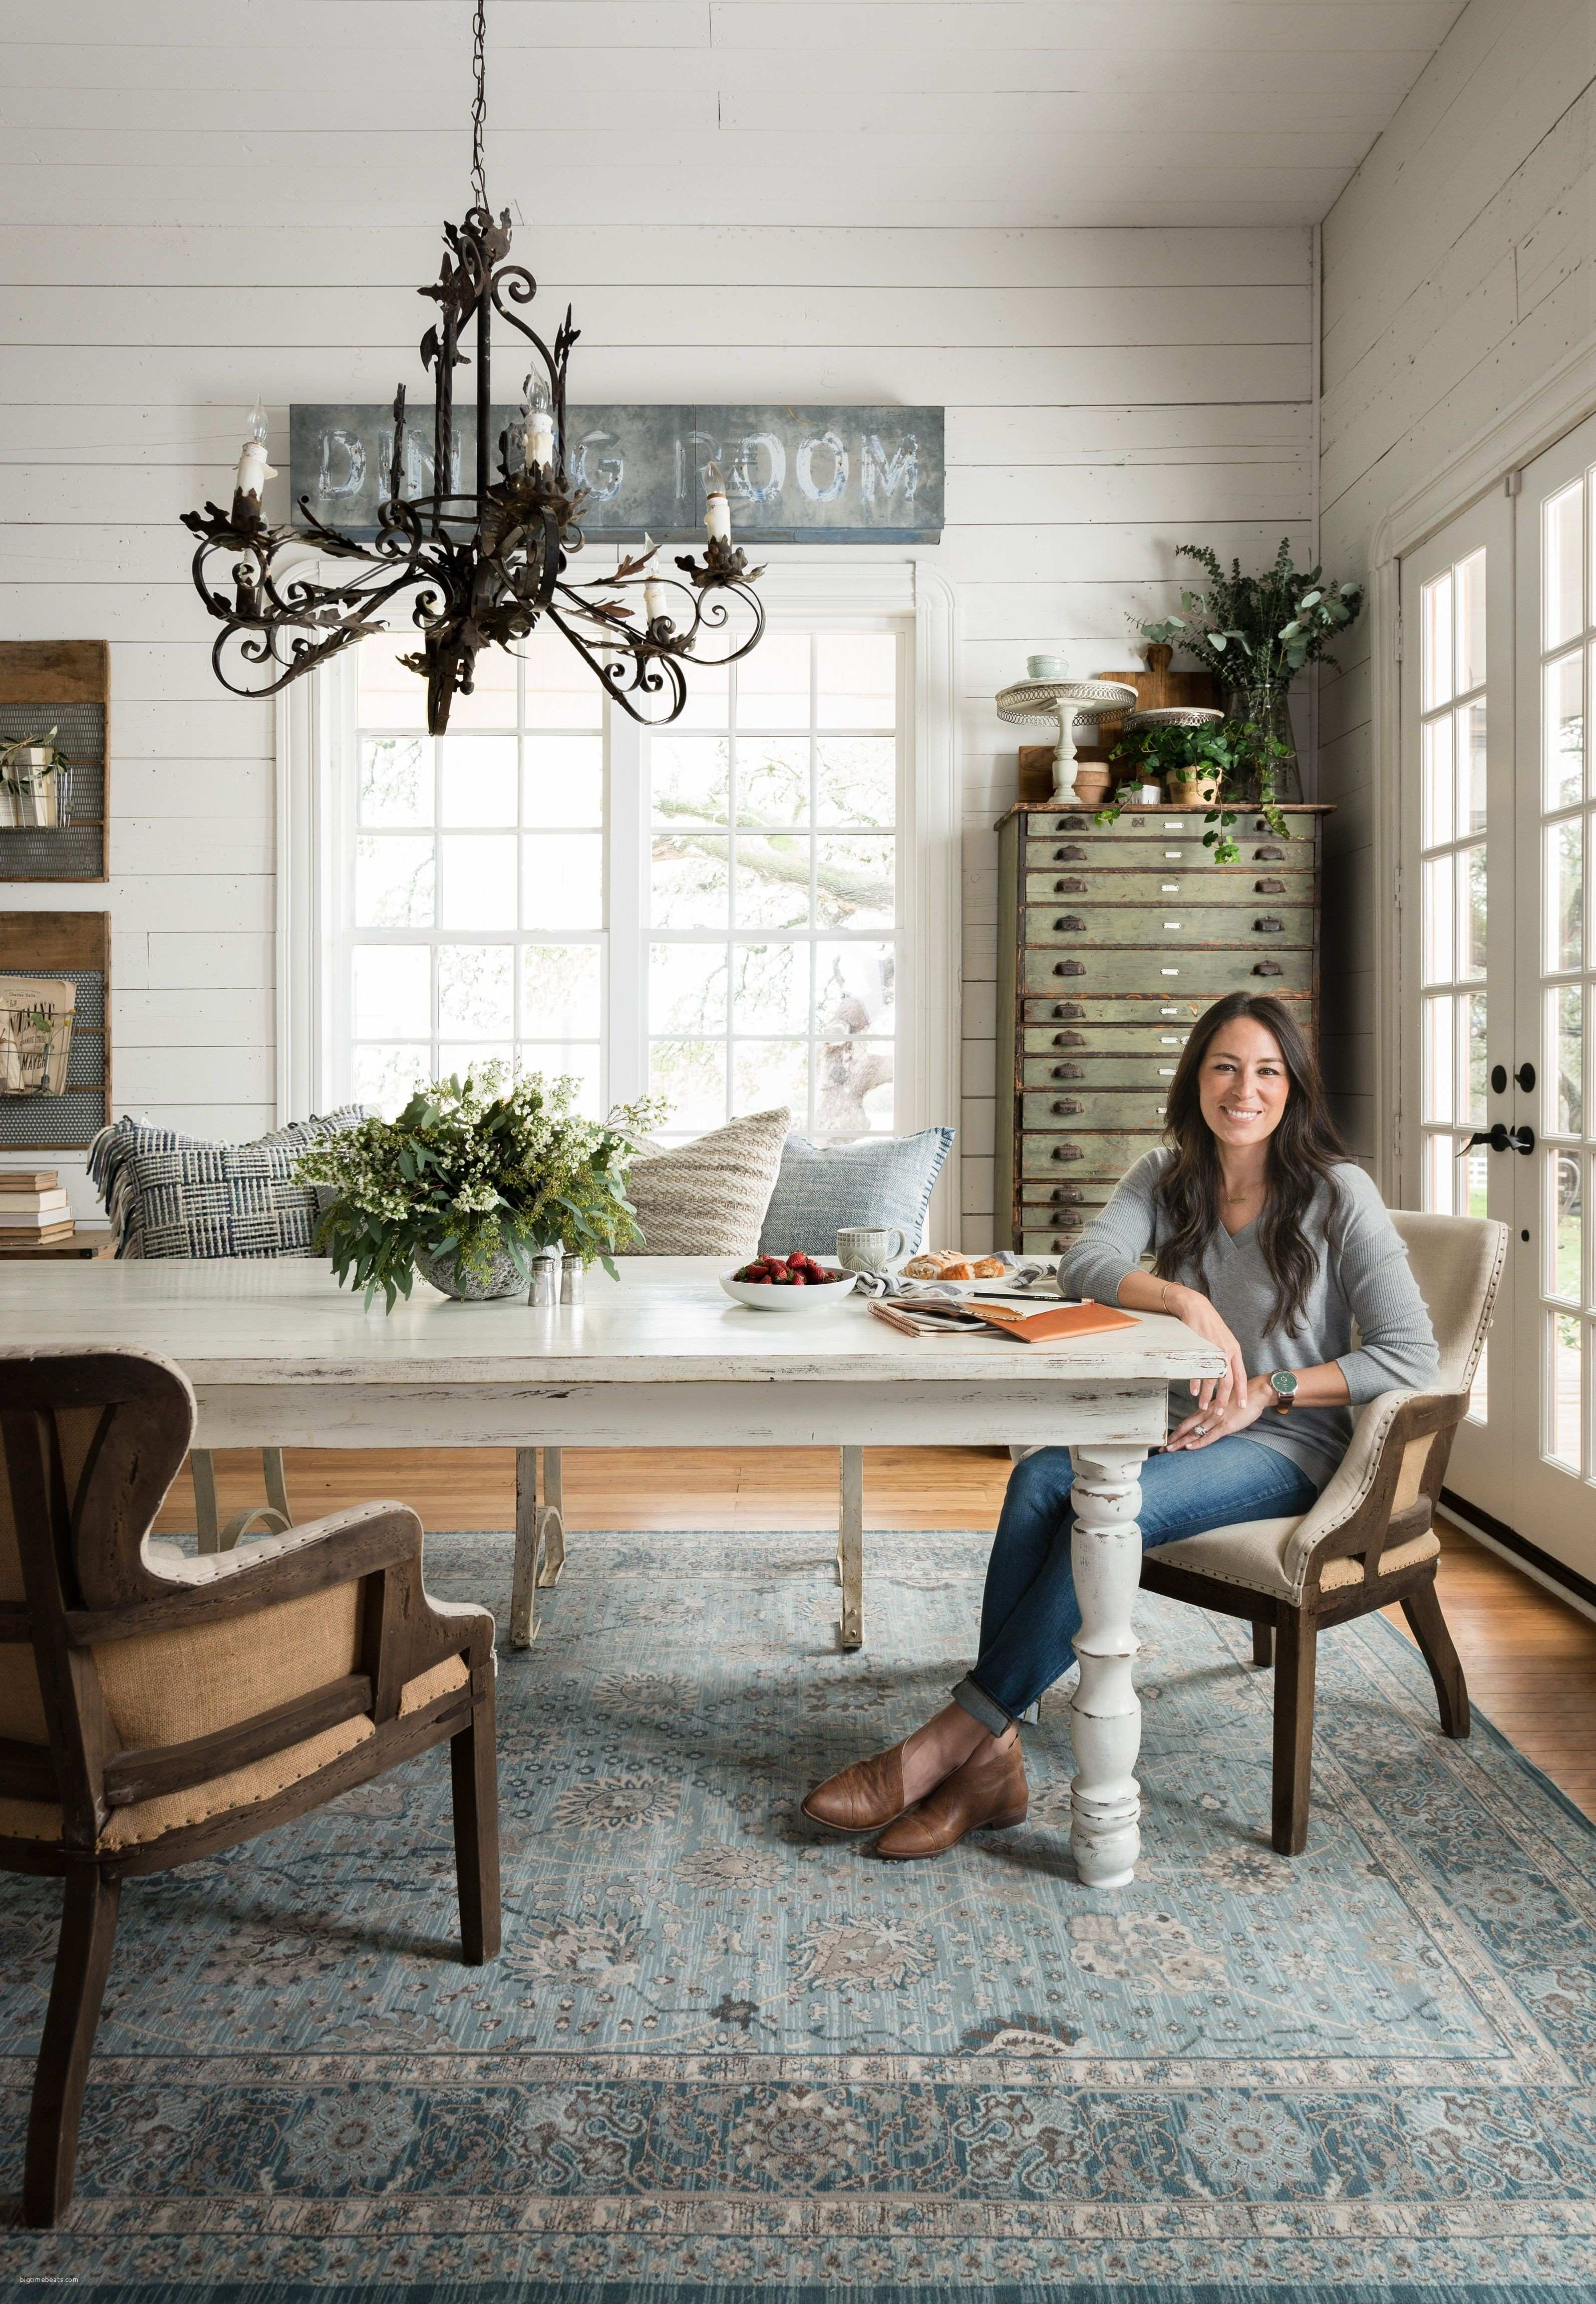 Adorable Ashley Furniture Magnolia Home Or Magnolia Homejoanna Regarding Magnolia Home Homestead 3 Piece Sectionals By Joanna Gaines (View 19 of 30)